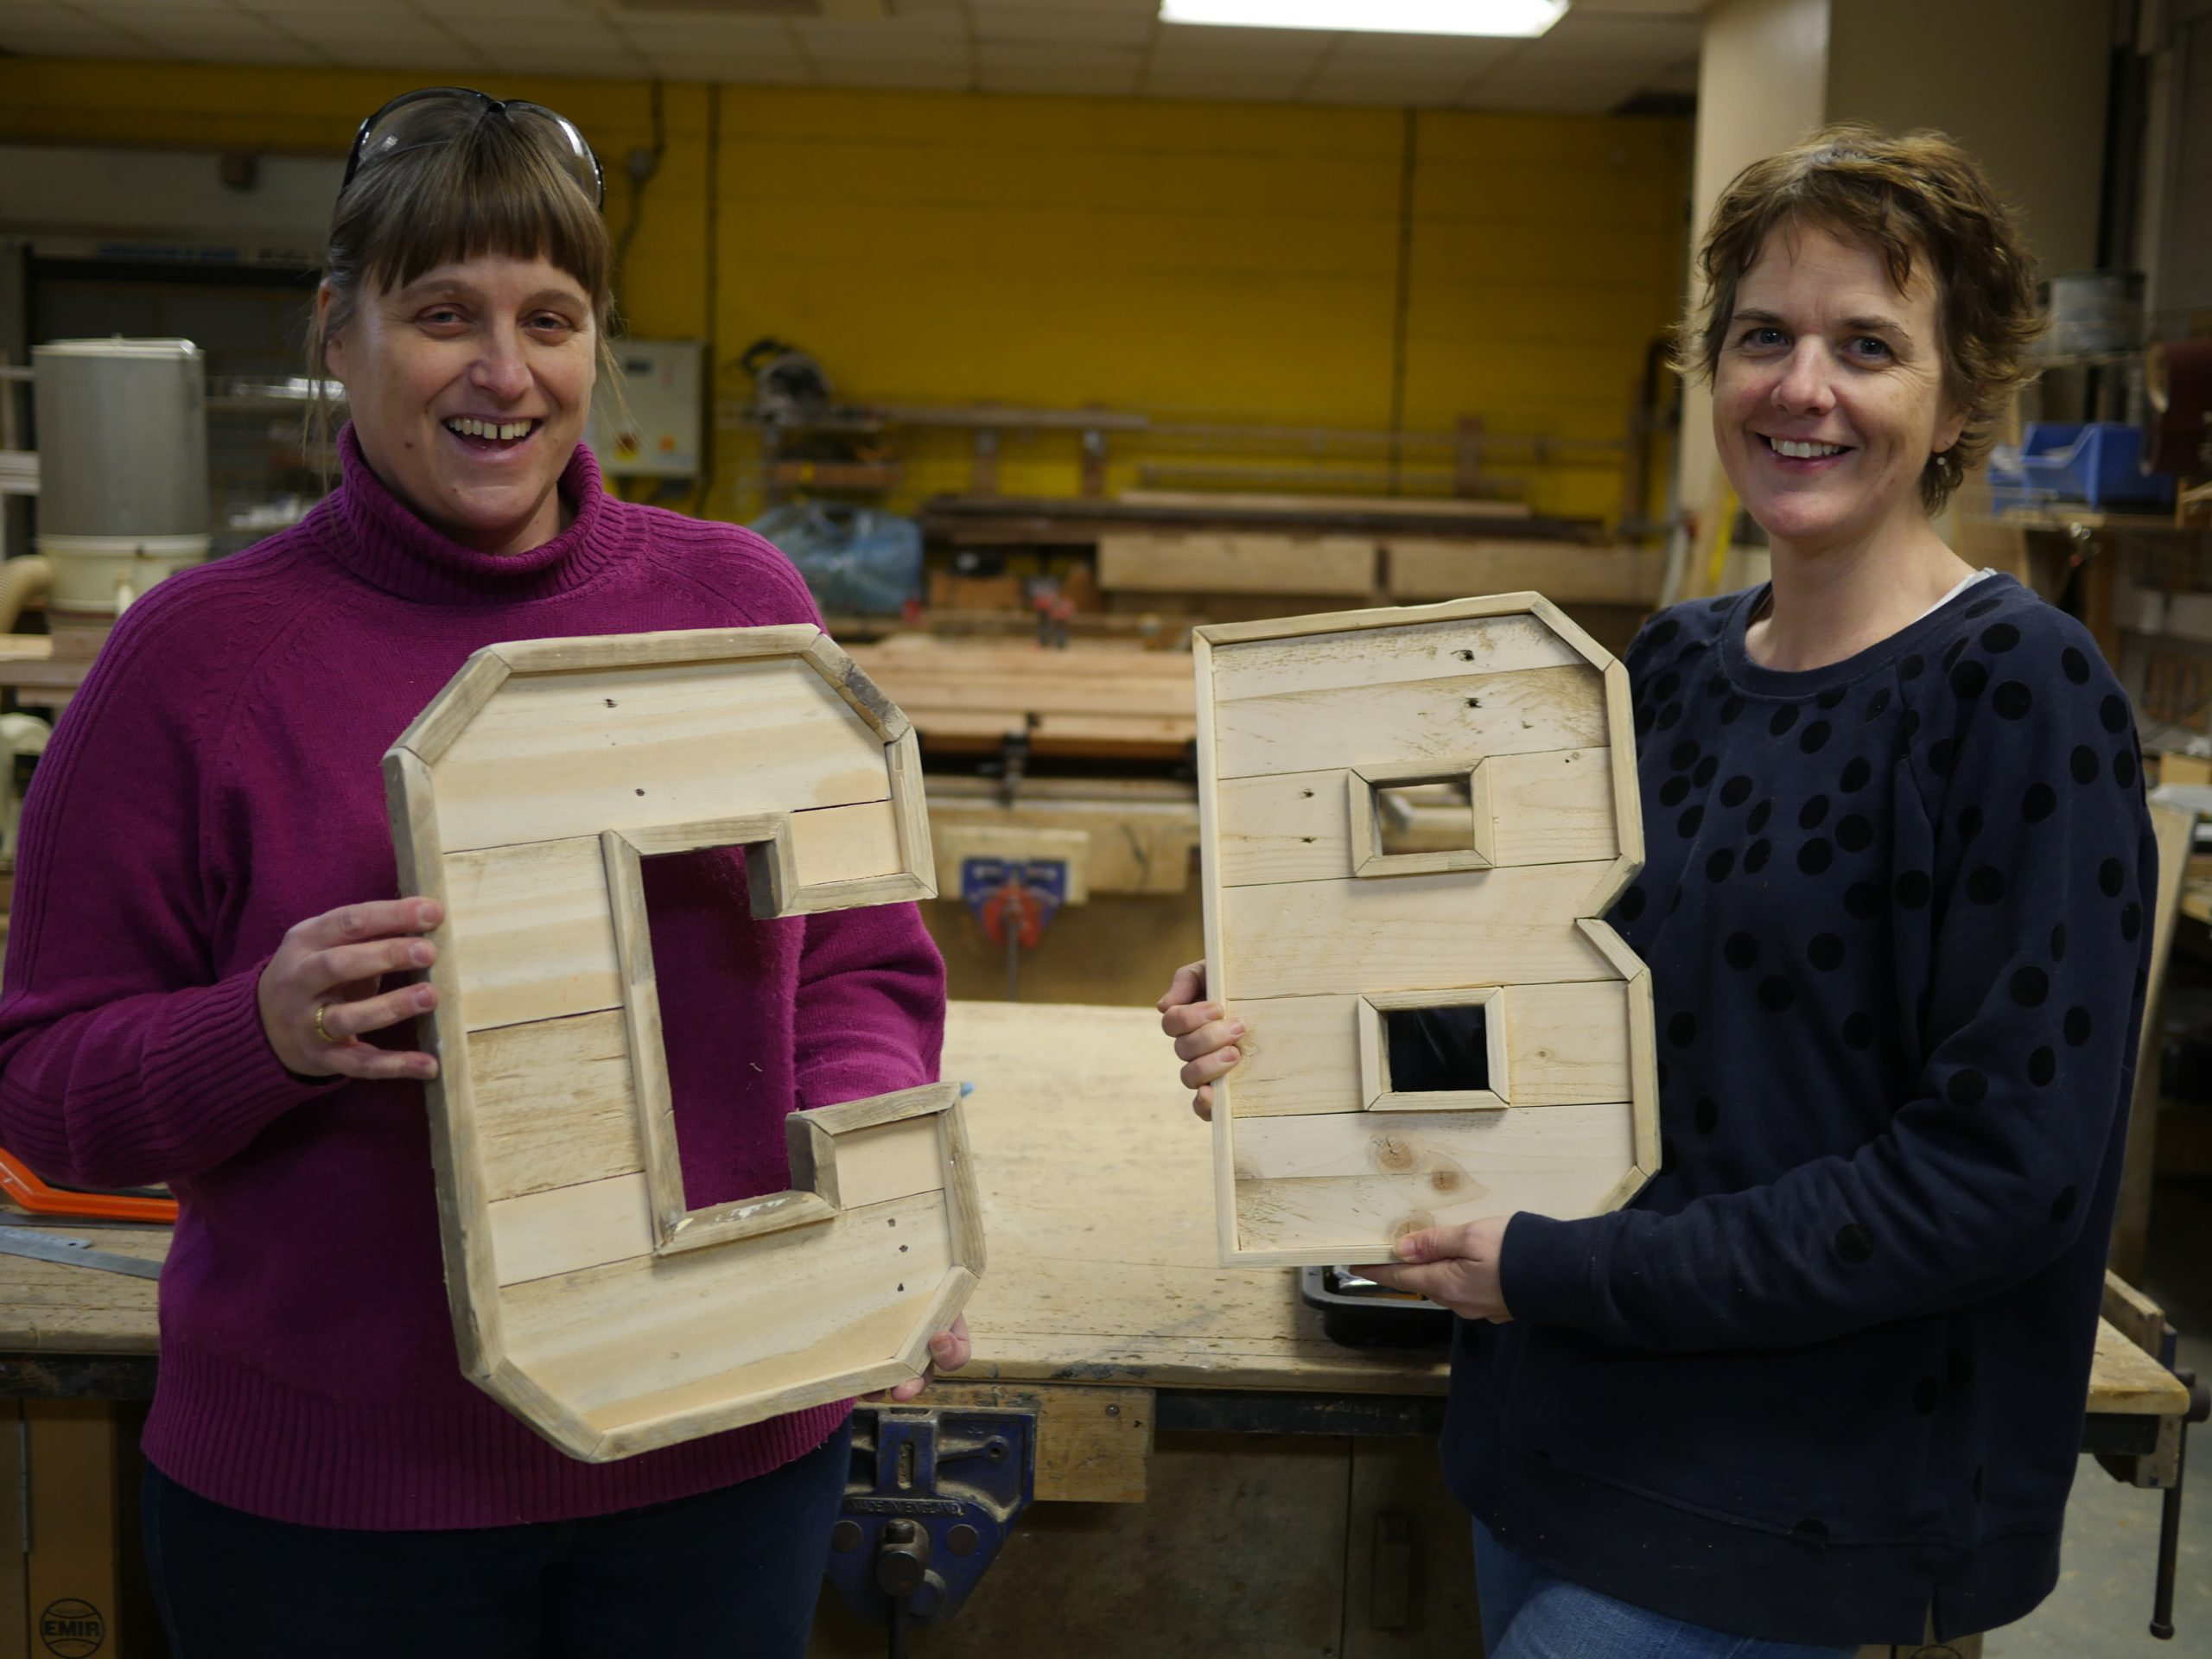 Making wooden letters from pallets in brighton